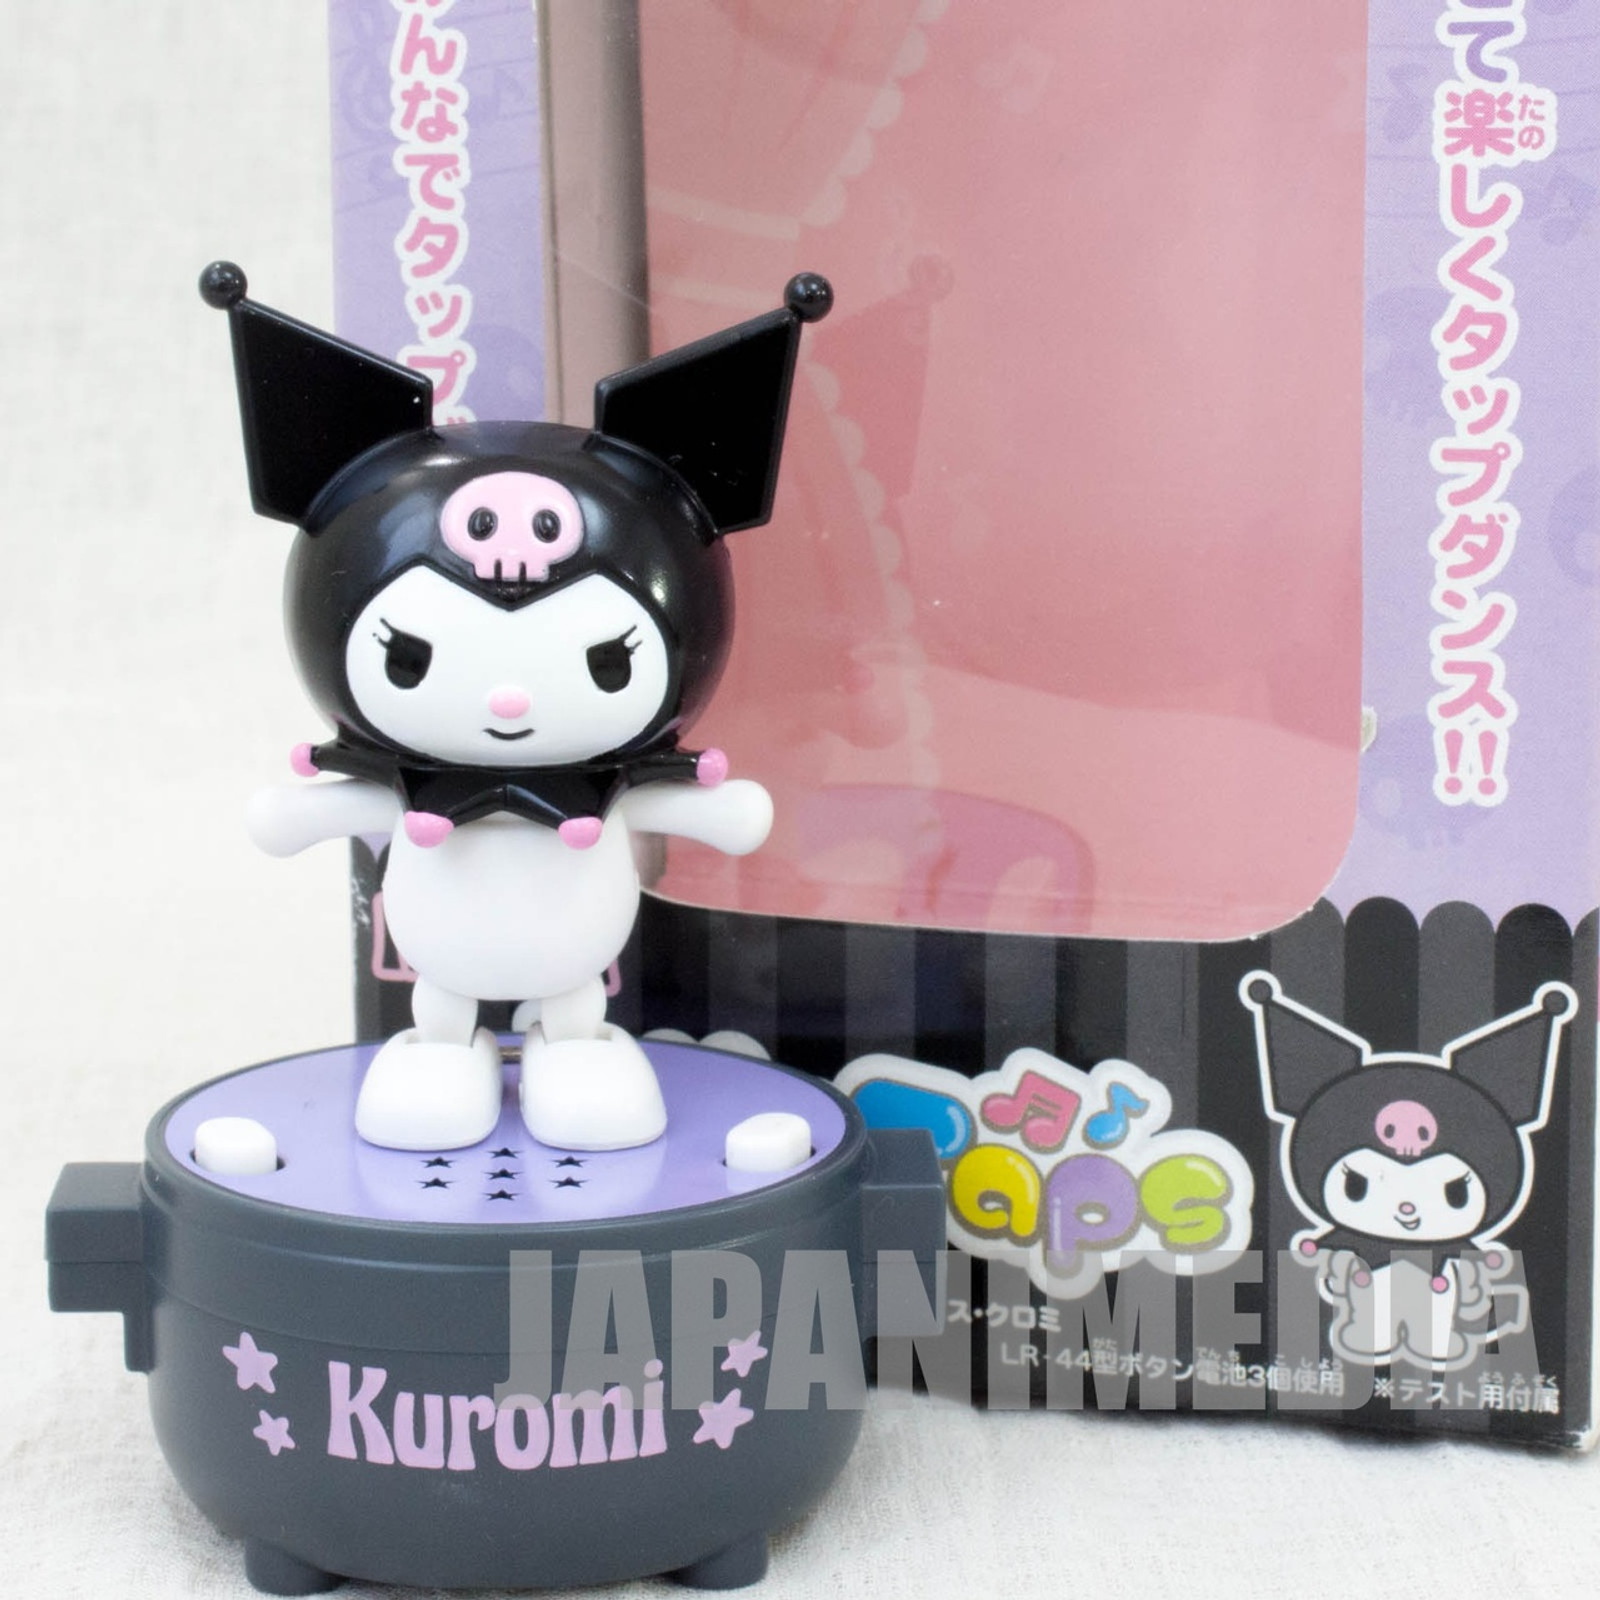 Sanrio Characters Kuromi Little Taps Sound Toy Figure JAPAN ANIME MY MELODY